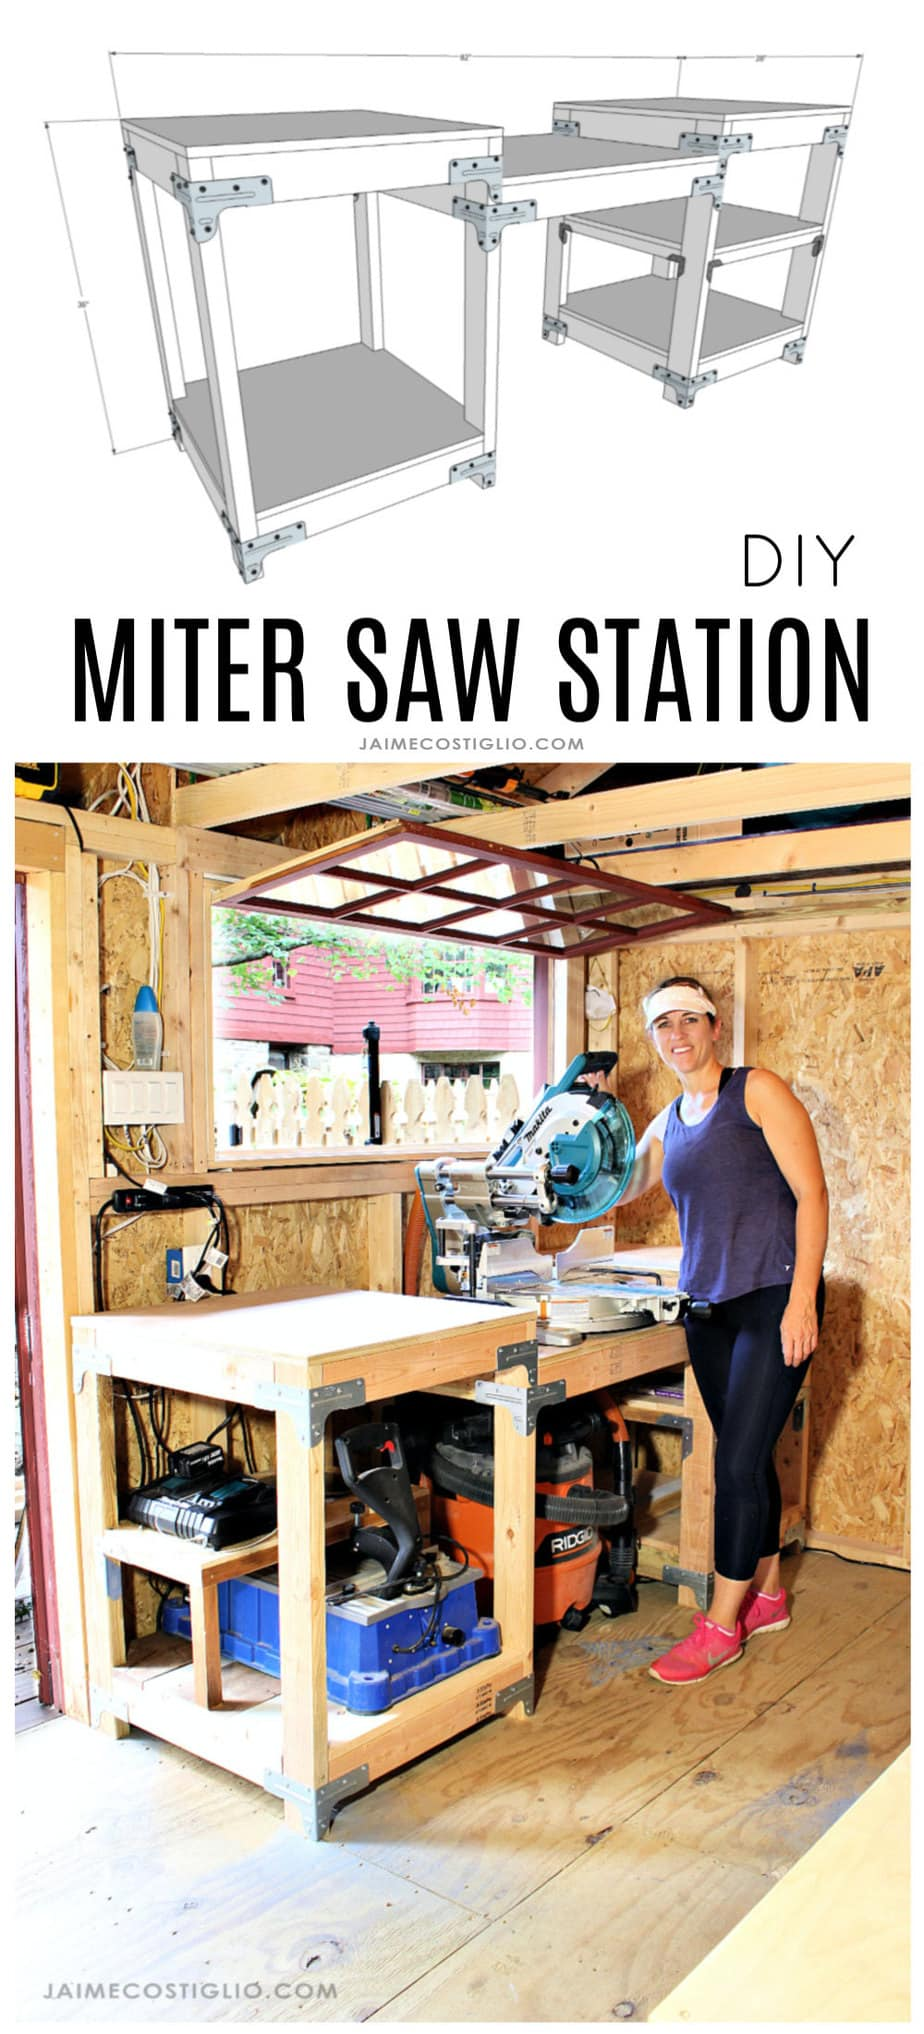 diy miter saw station